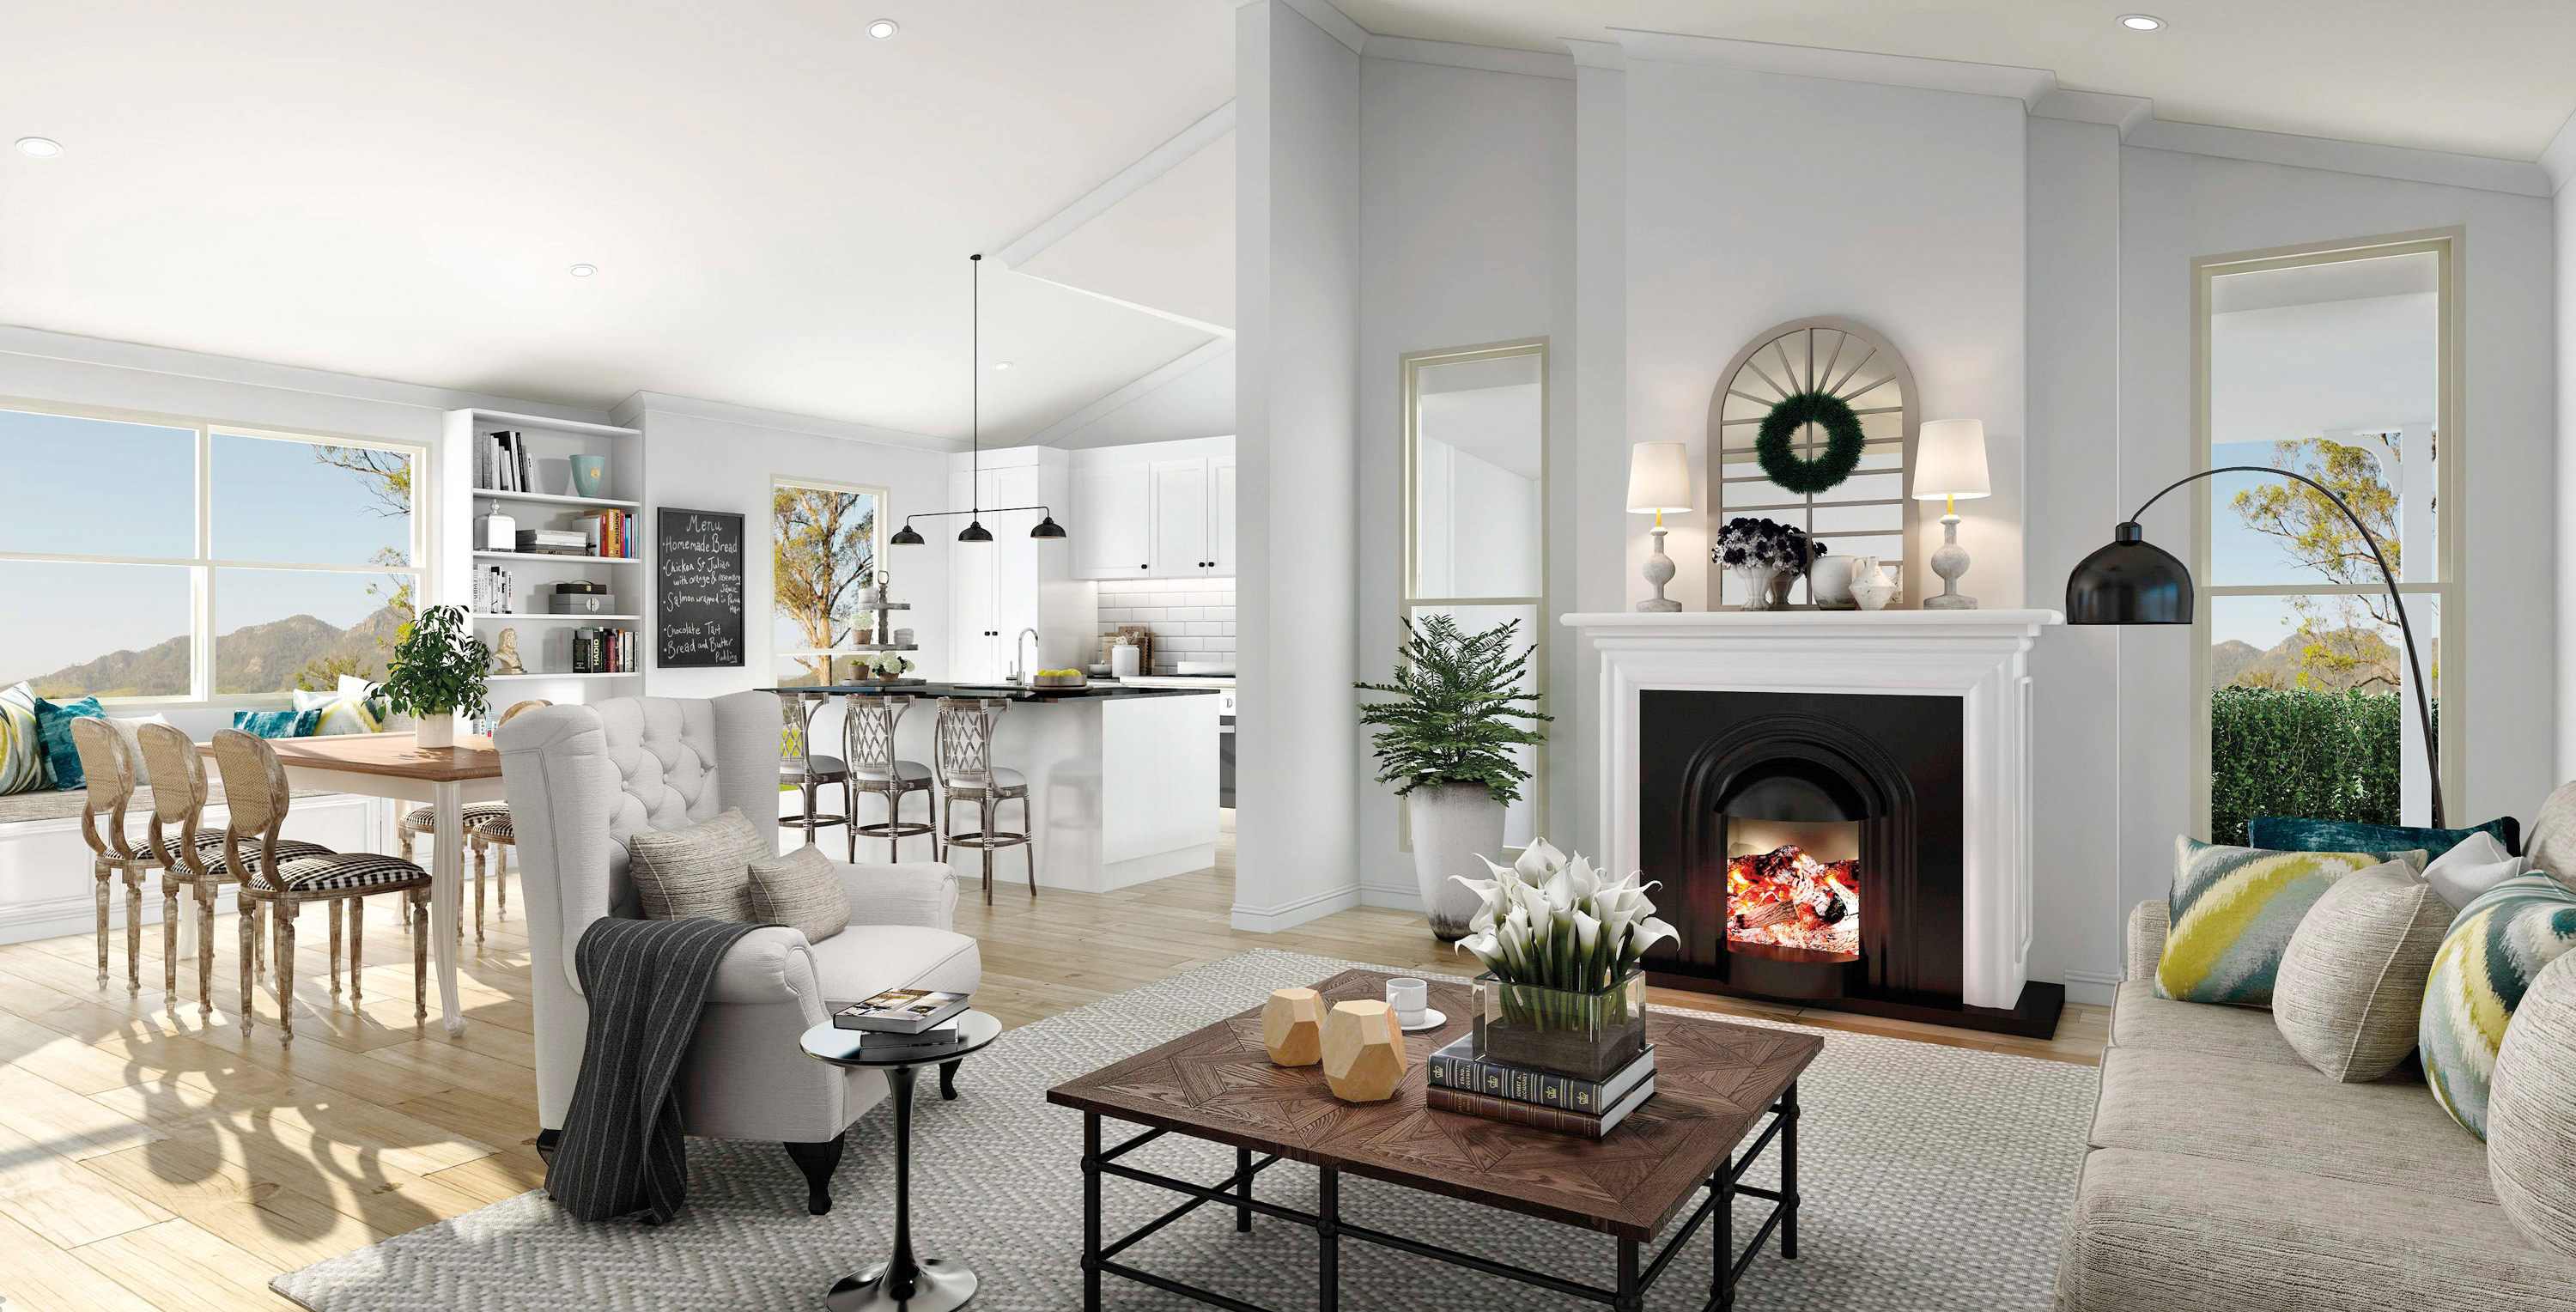 Manor Homes AgQuip Country Display Home Interior Living